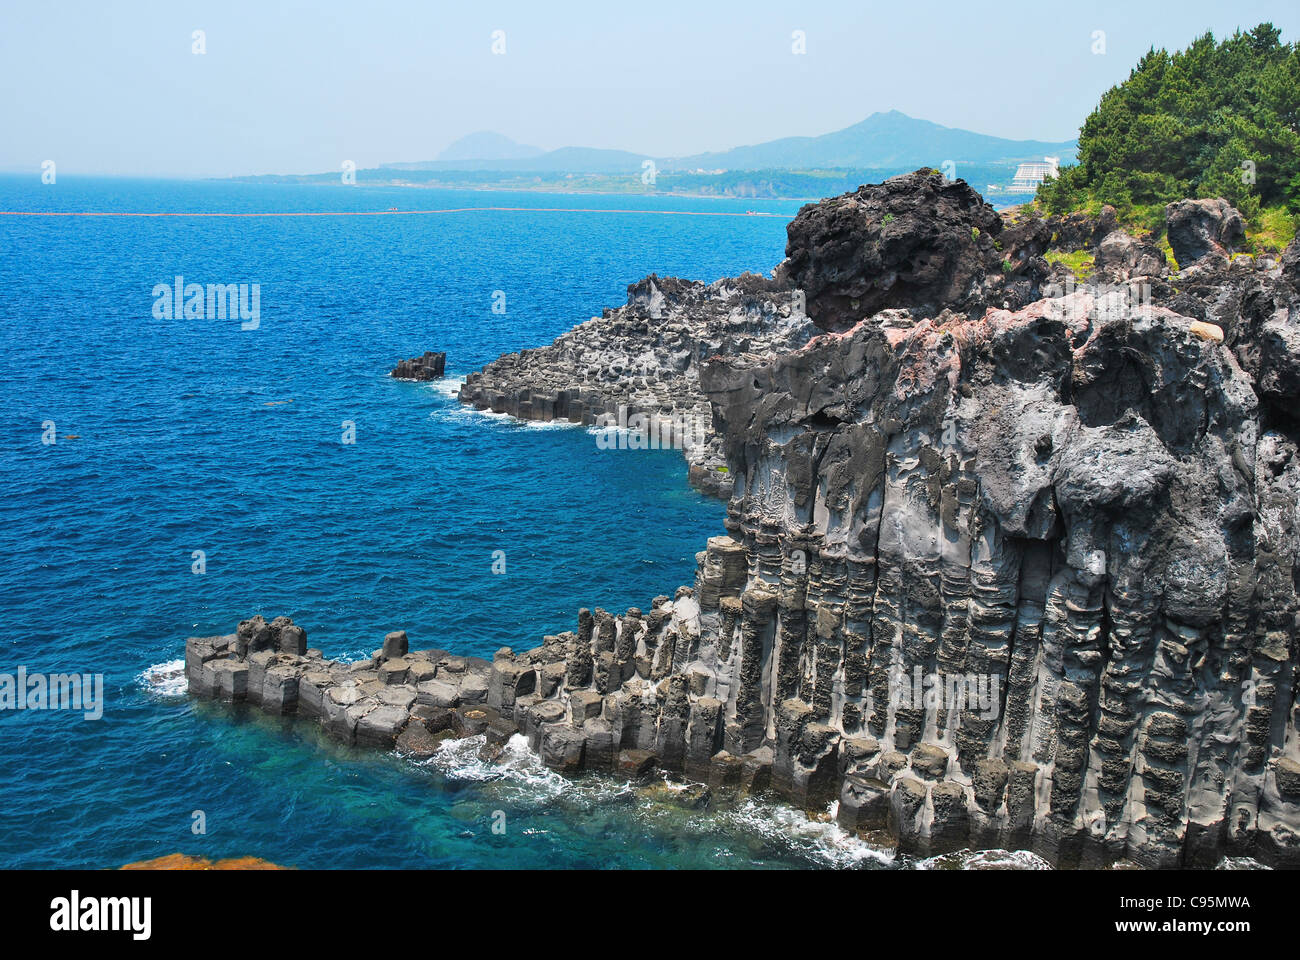 Unique rock formation formed from the forces of nature, found on Jeju island, Korea. - Stock Image